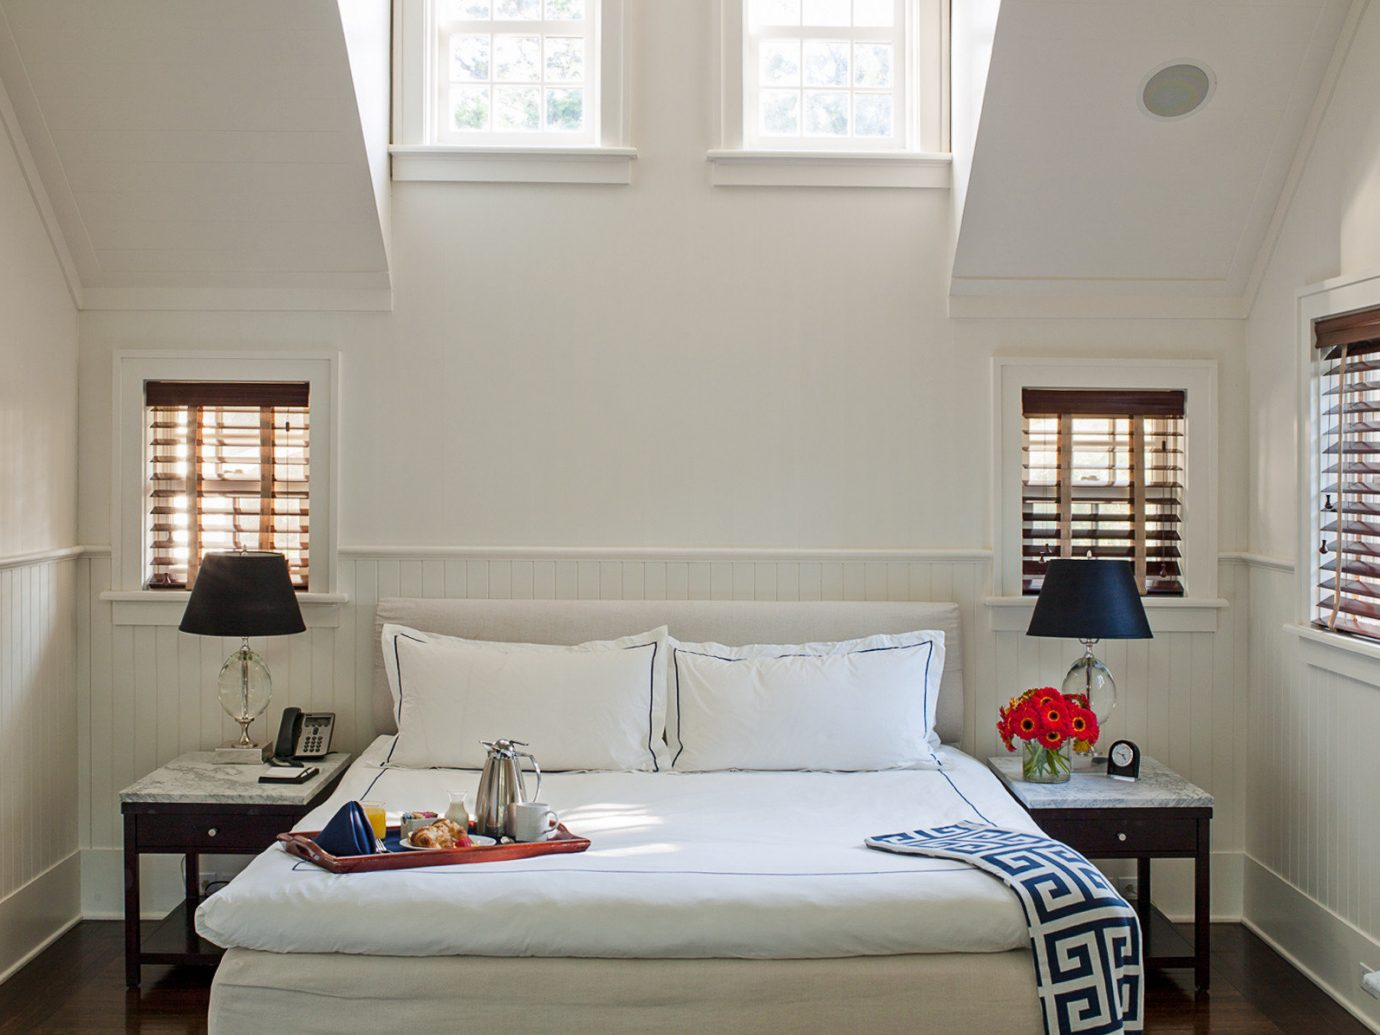 Beach South Fork The Hamptons indoor wall window floor room bed home Bedroom bed frame interior design ceiling furniture window covering real estate living room daylighting window treatment house mattress estate decorated